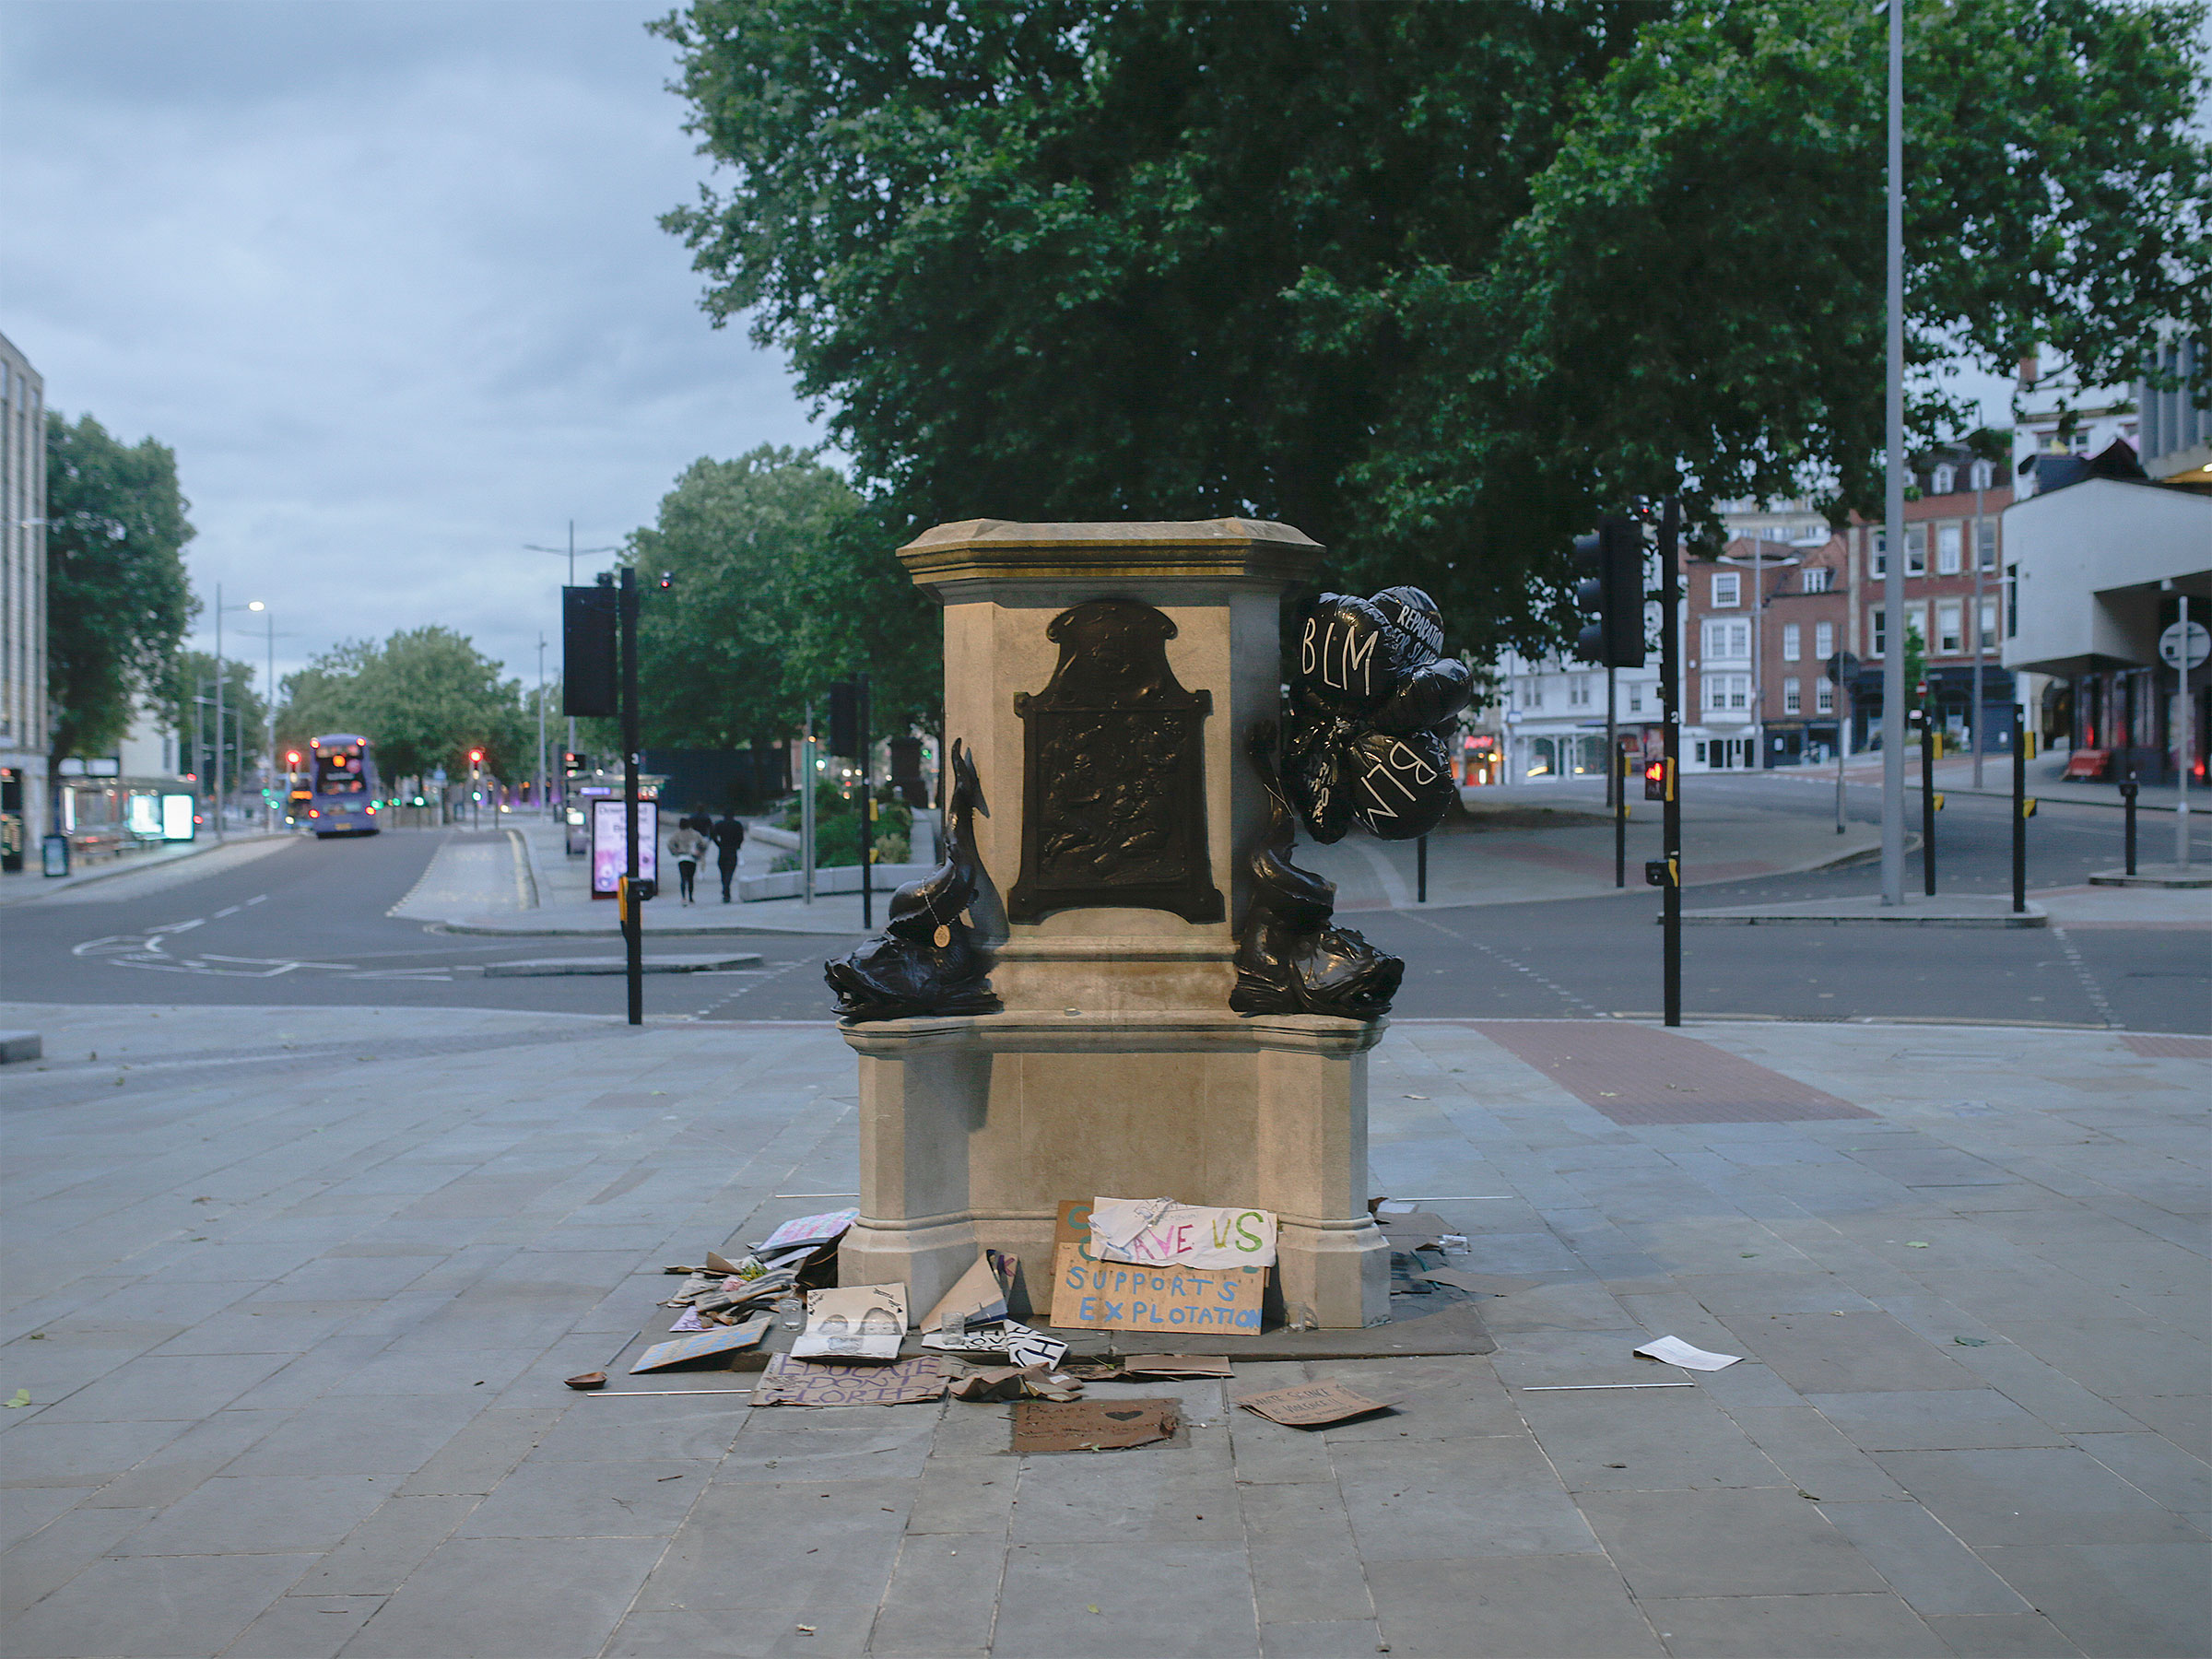 The plinth of the statue of Edward Colston in Bristol, England, is now surrounded by messages of support for the Black Lives Matter movement, June 11, 2020.